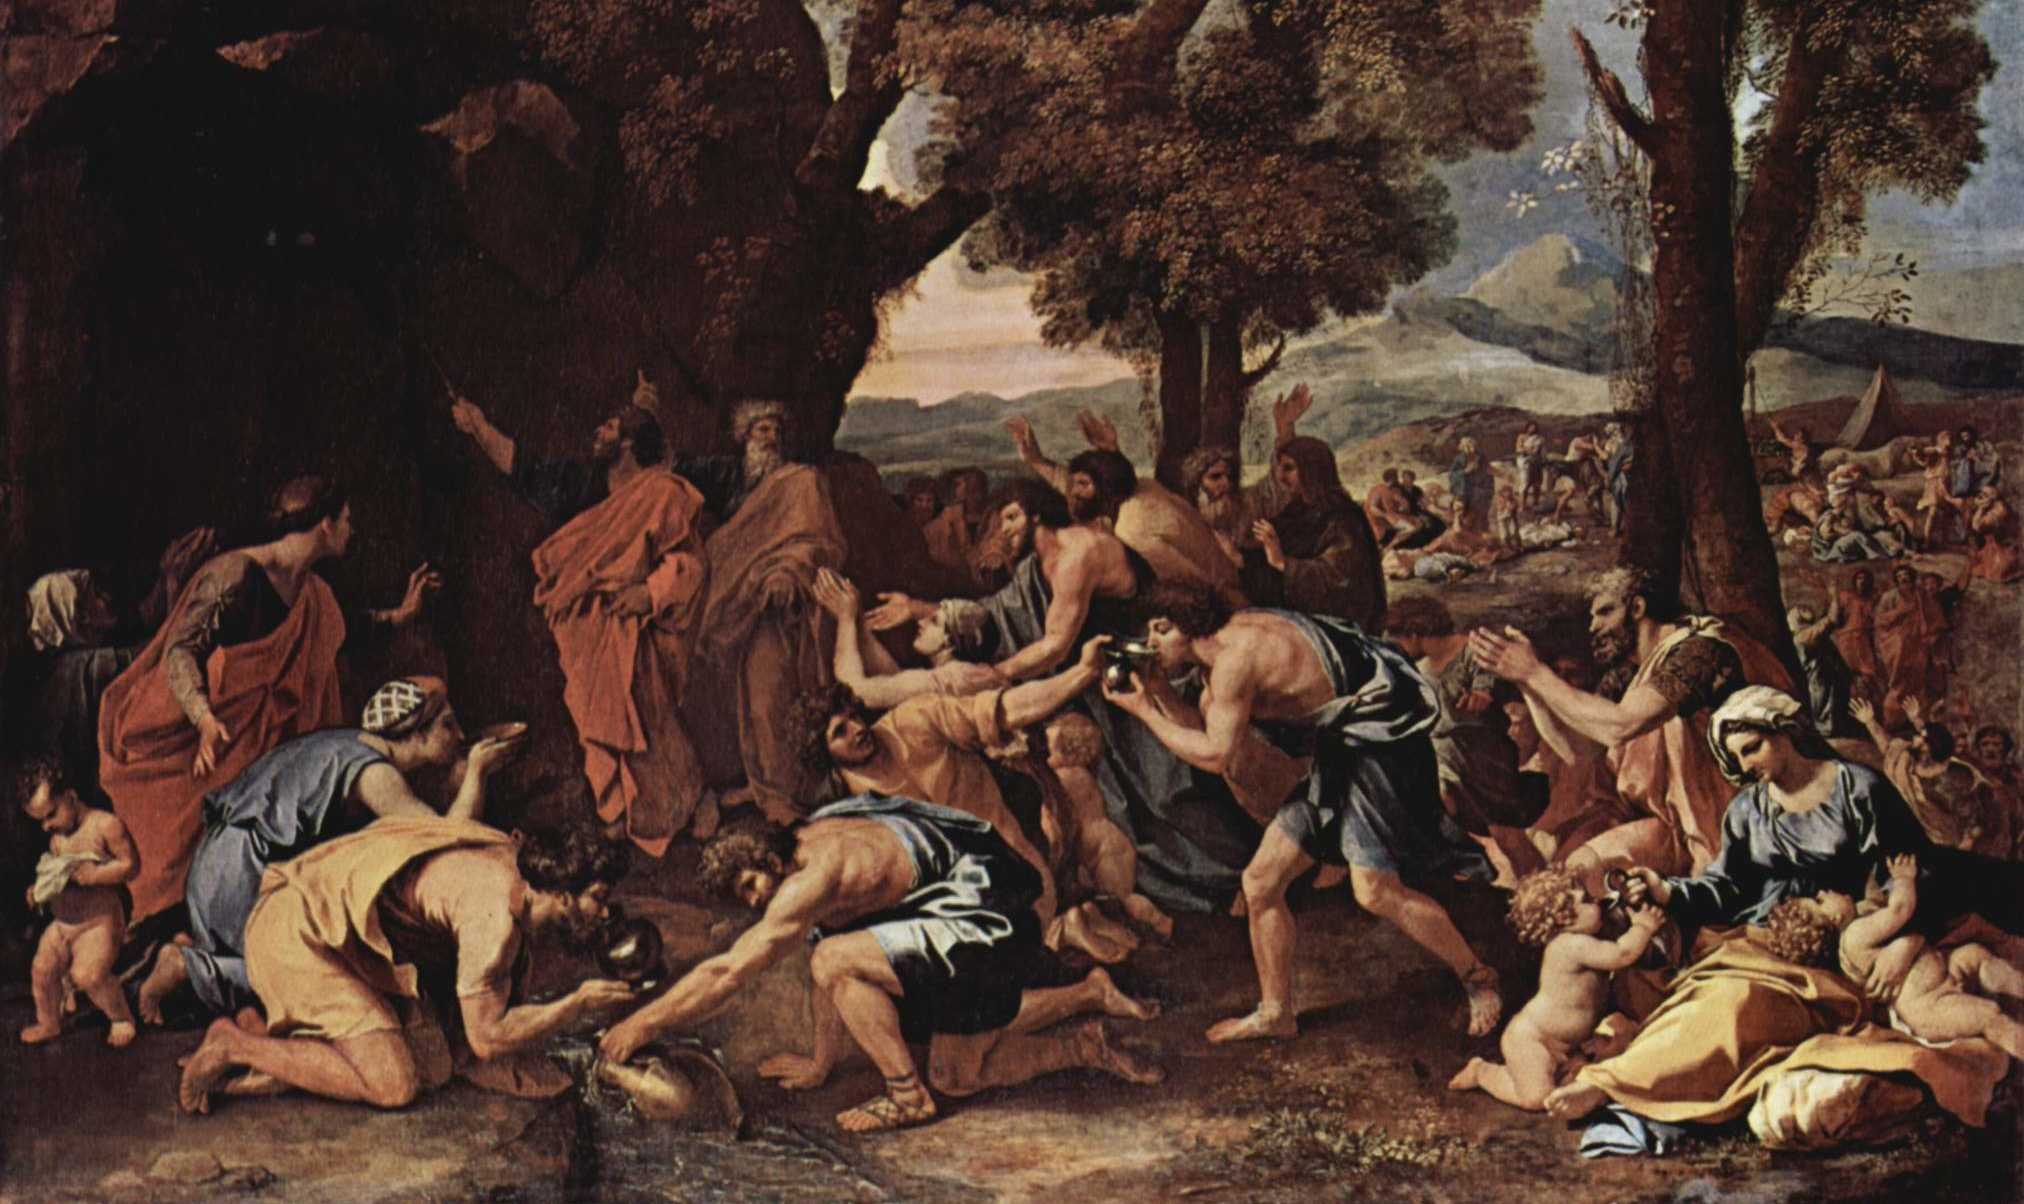 an antique painting of moses shortly after striking the rock. the israelites crouch down with jugs to collect water.